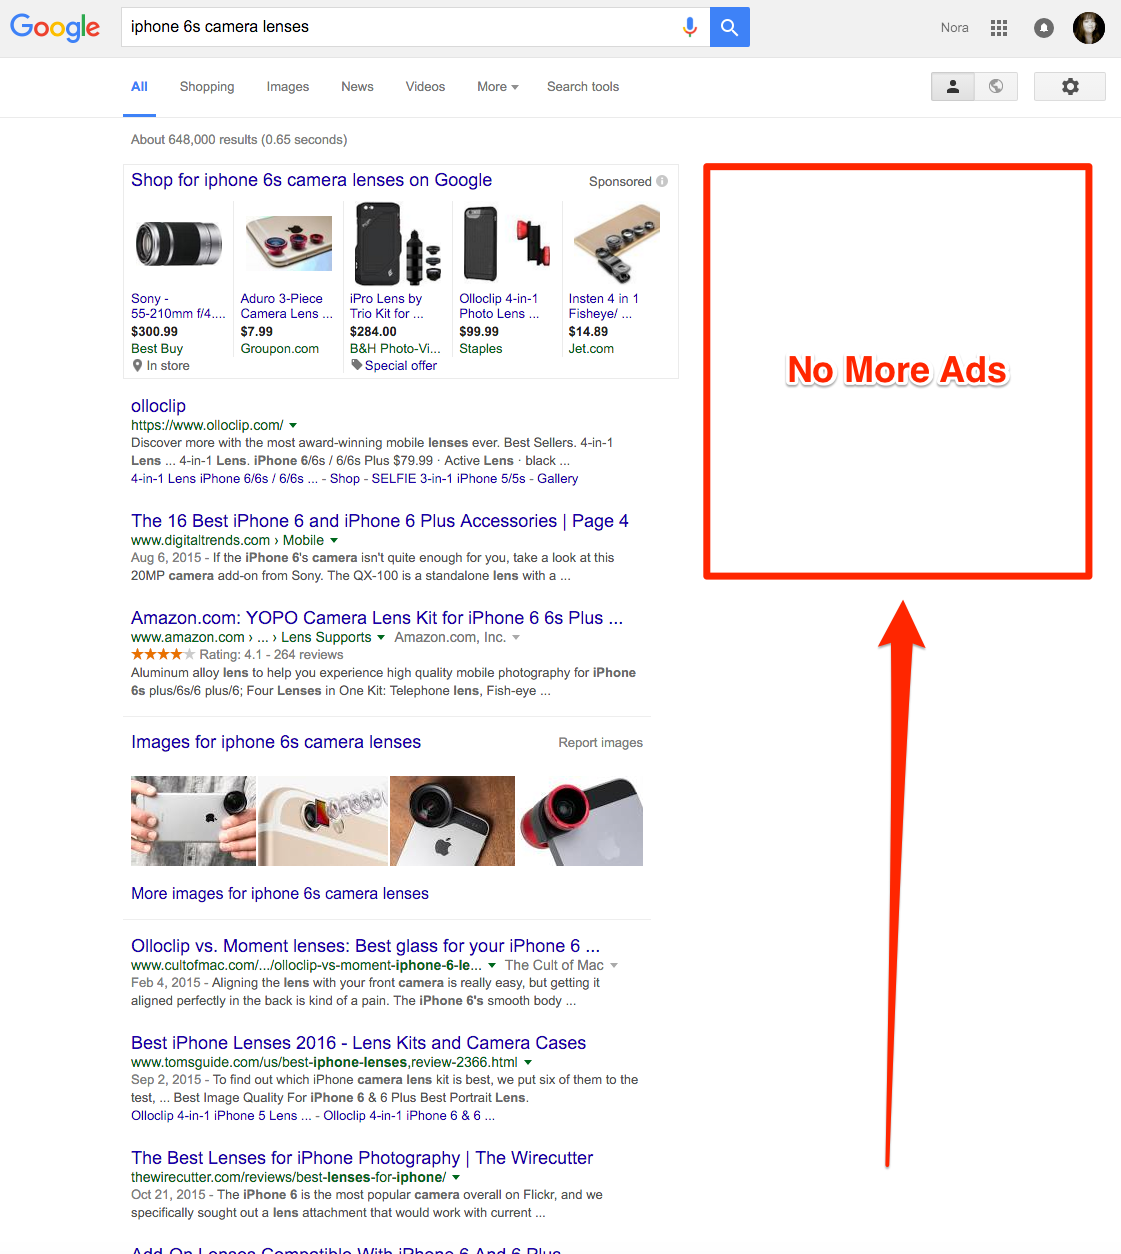 Google Removes Ads in Search Engine Results Pages